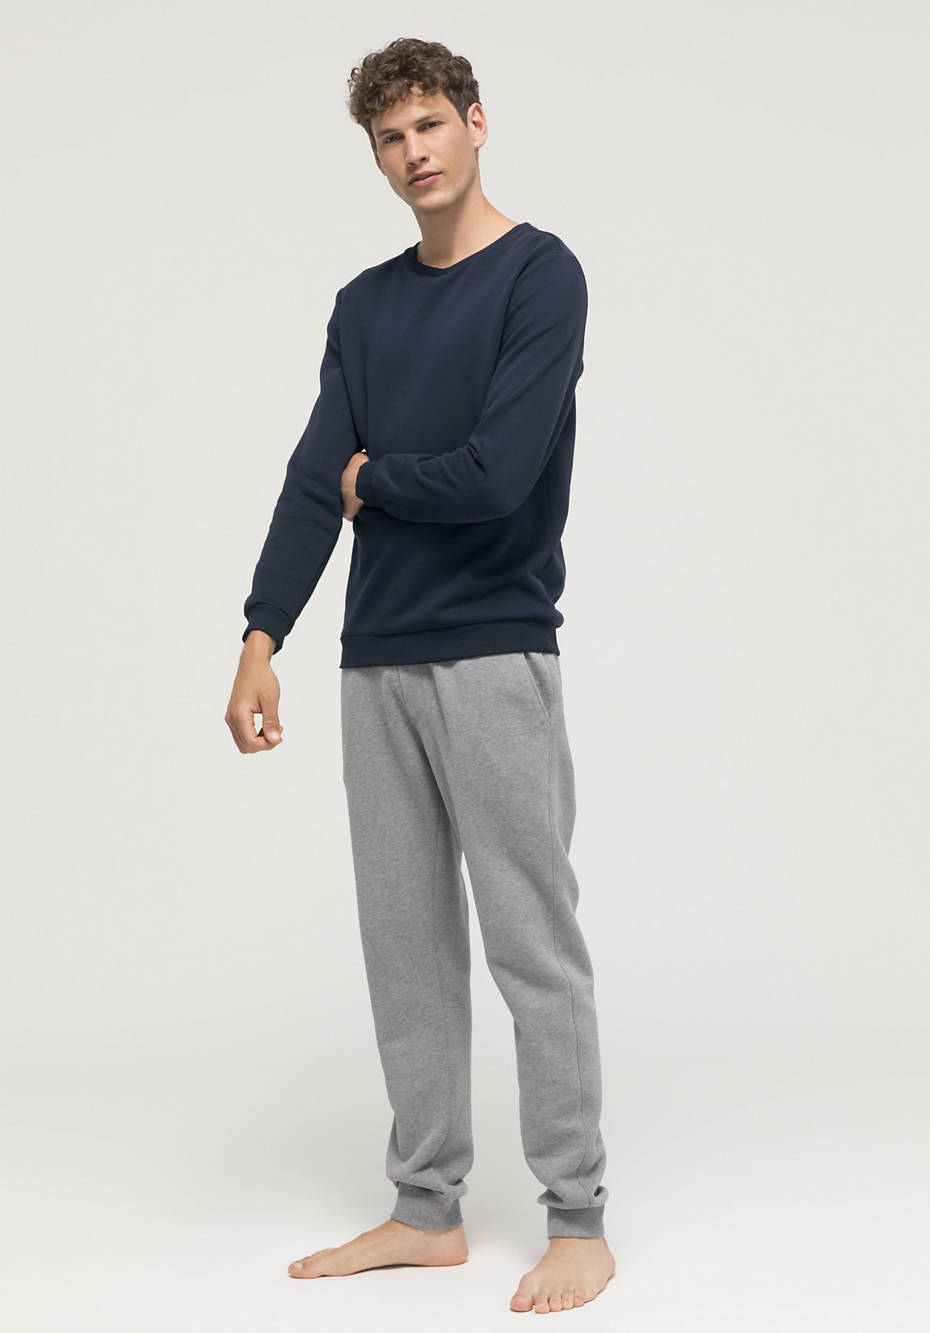 Bed recycling sweatshirt made from pure organic cotton